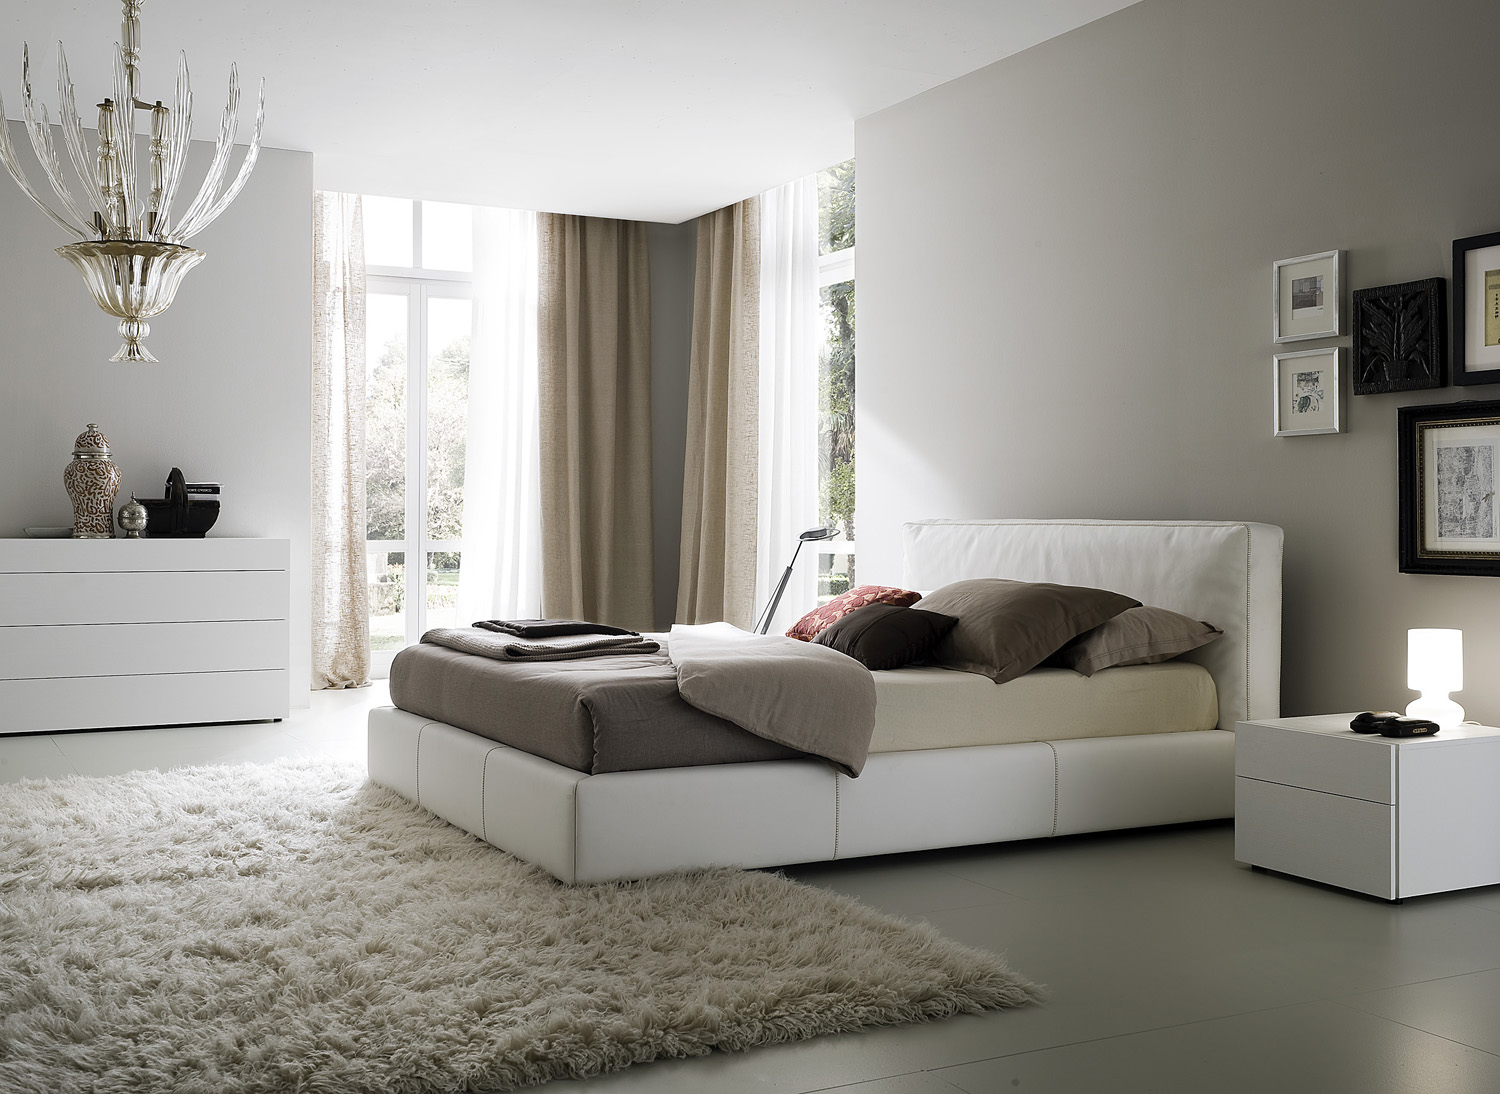 Bedroom decorating ideas from evinco for New bedroom decoration